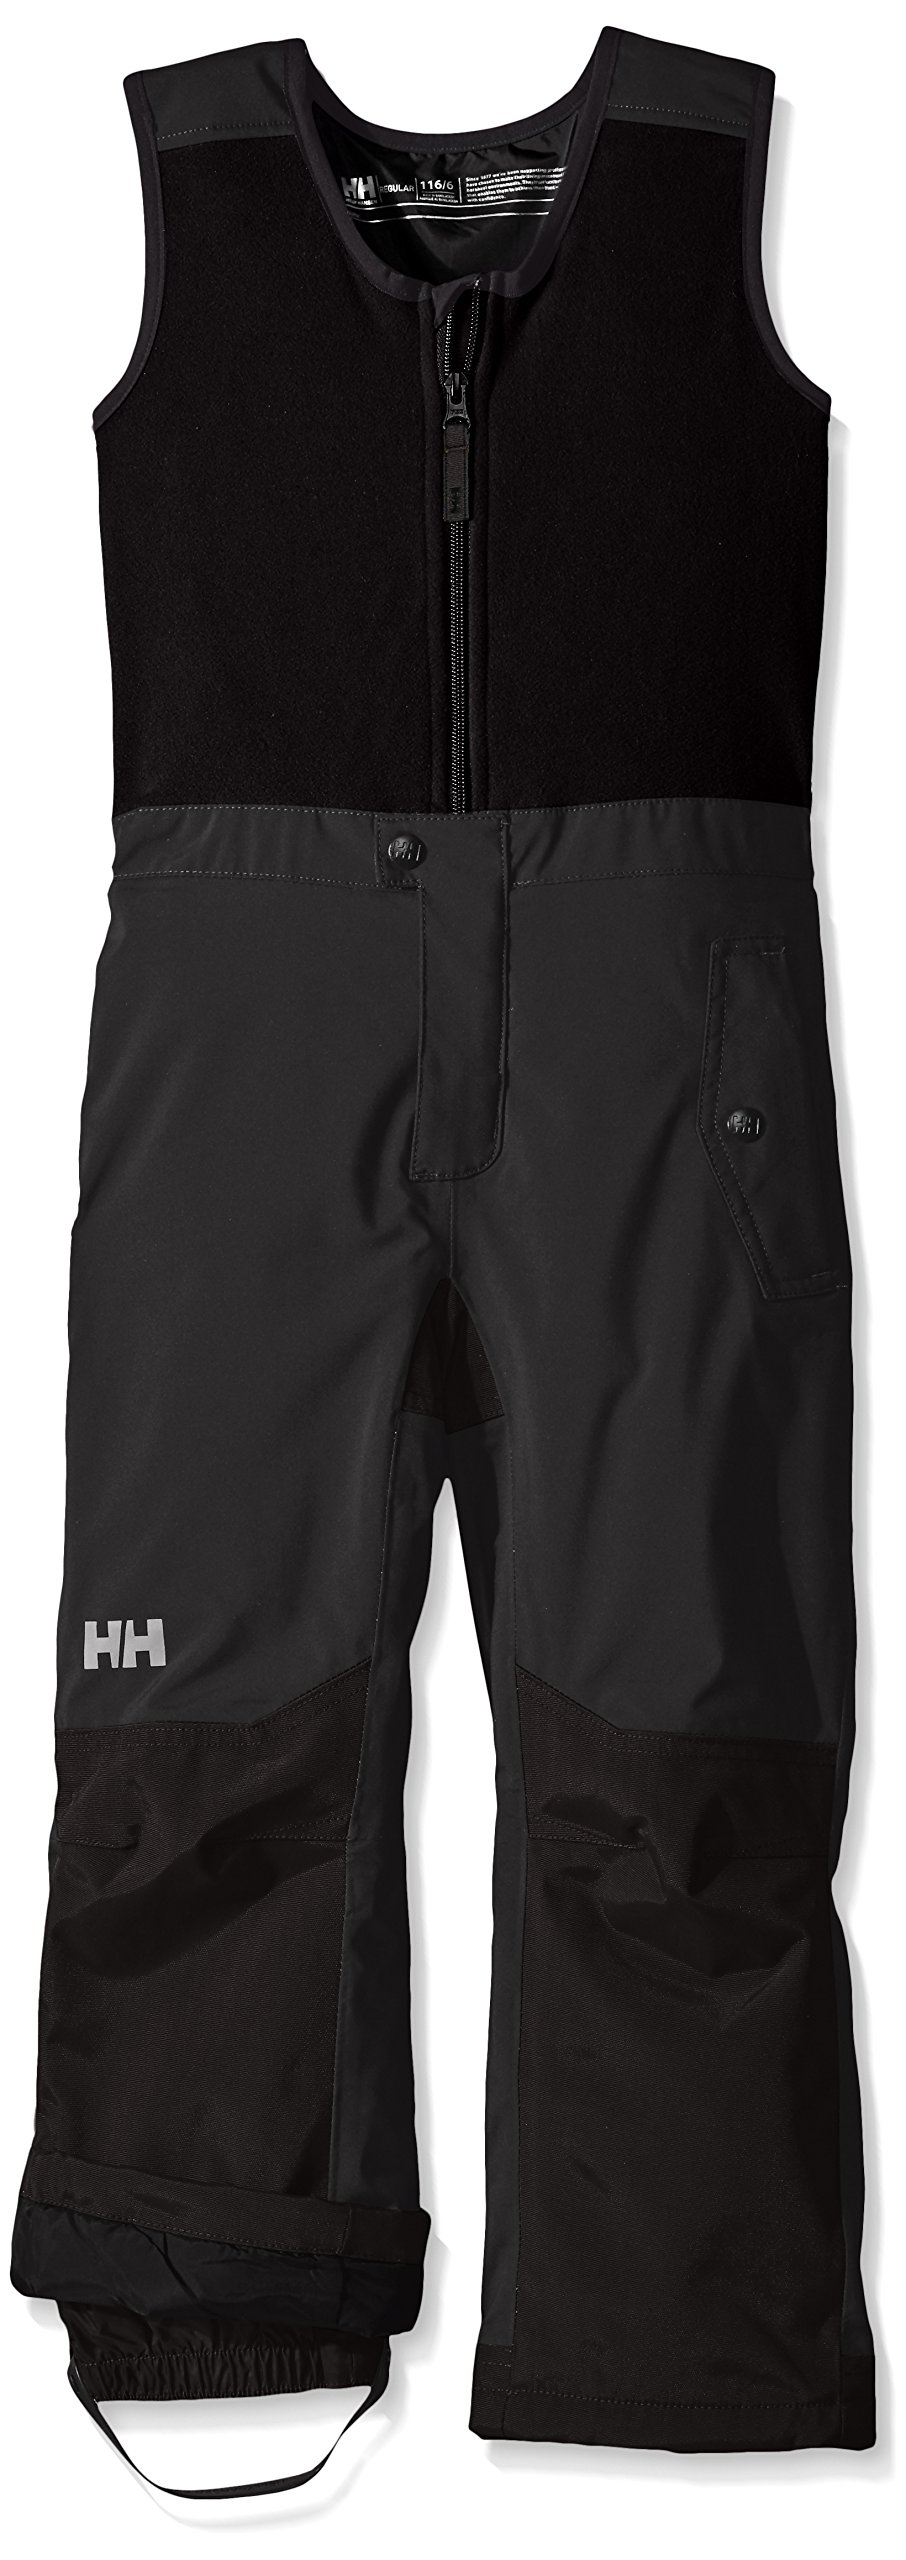 Helly Hansen Kids Powder Bib Pants, Ebony, Size 8